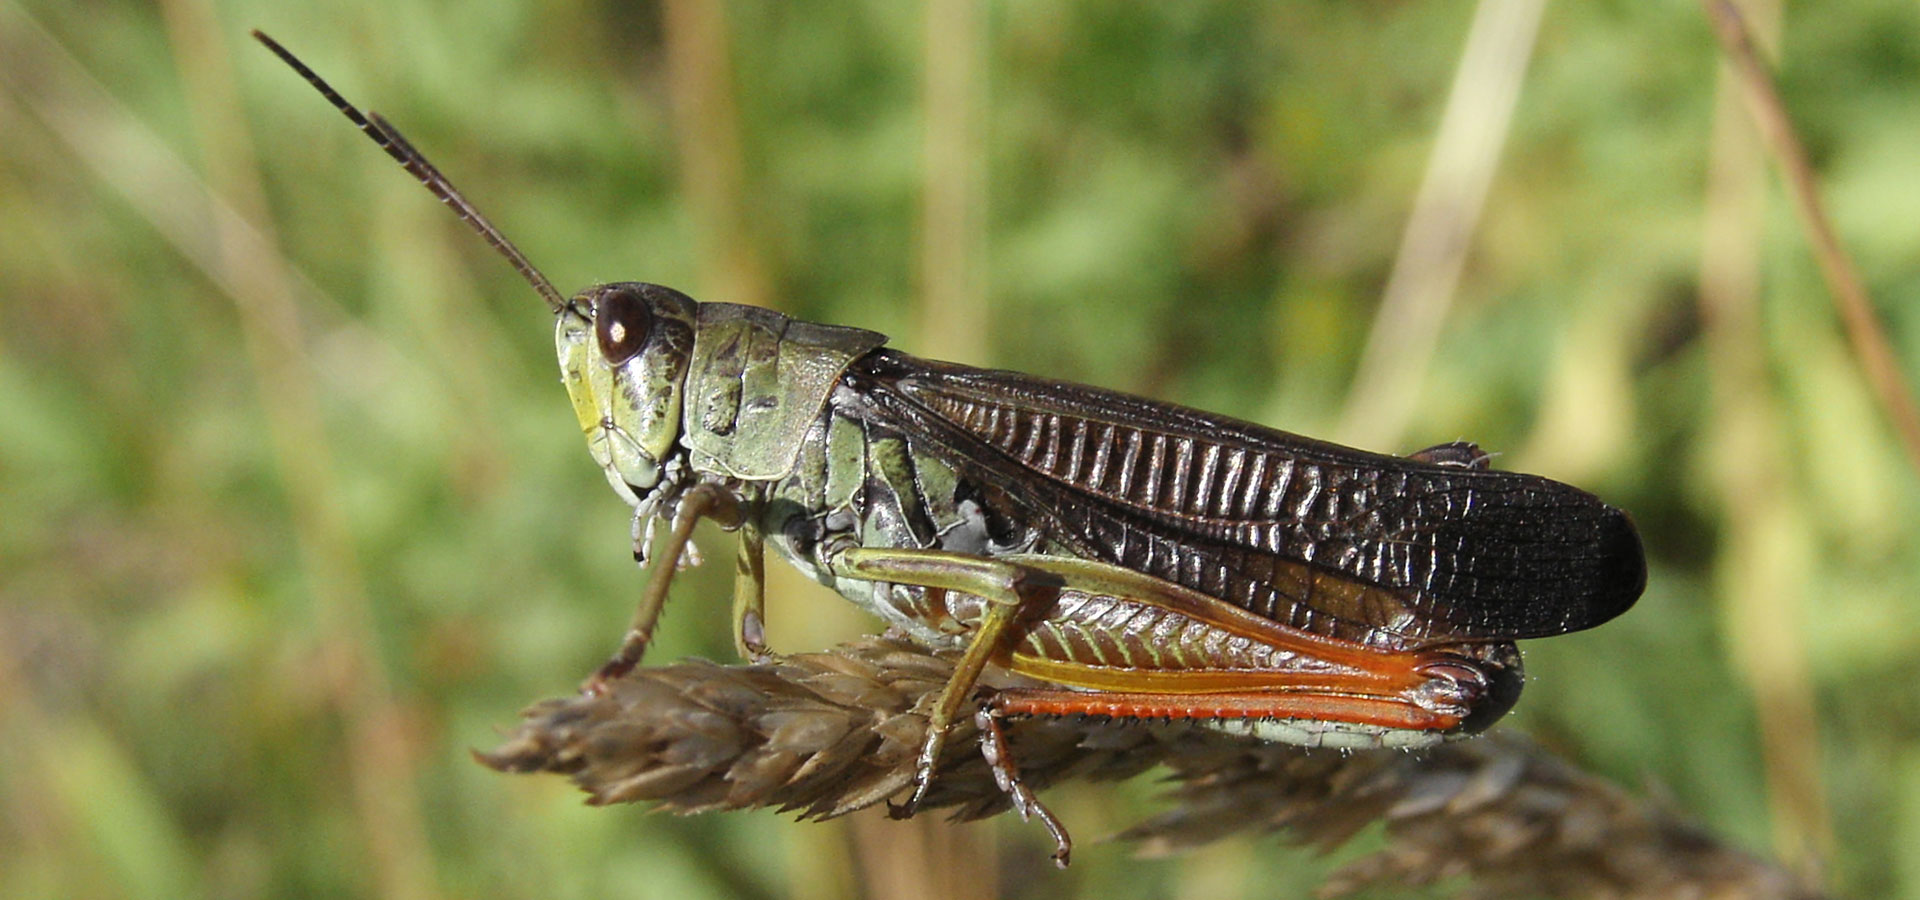 Stauroderus scalaris, a species which we will see during our grasshopper tour in Slovenia